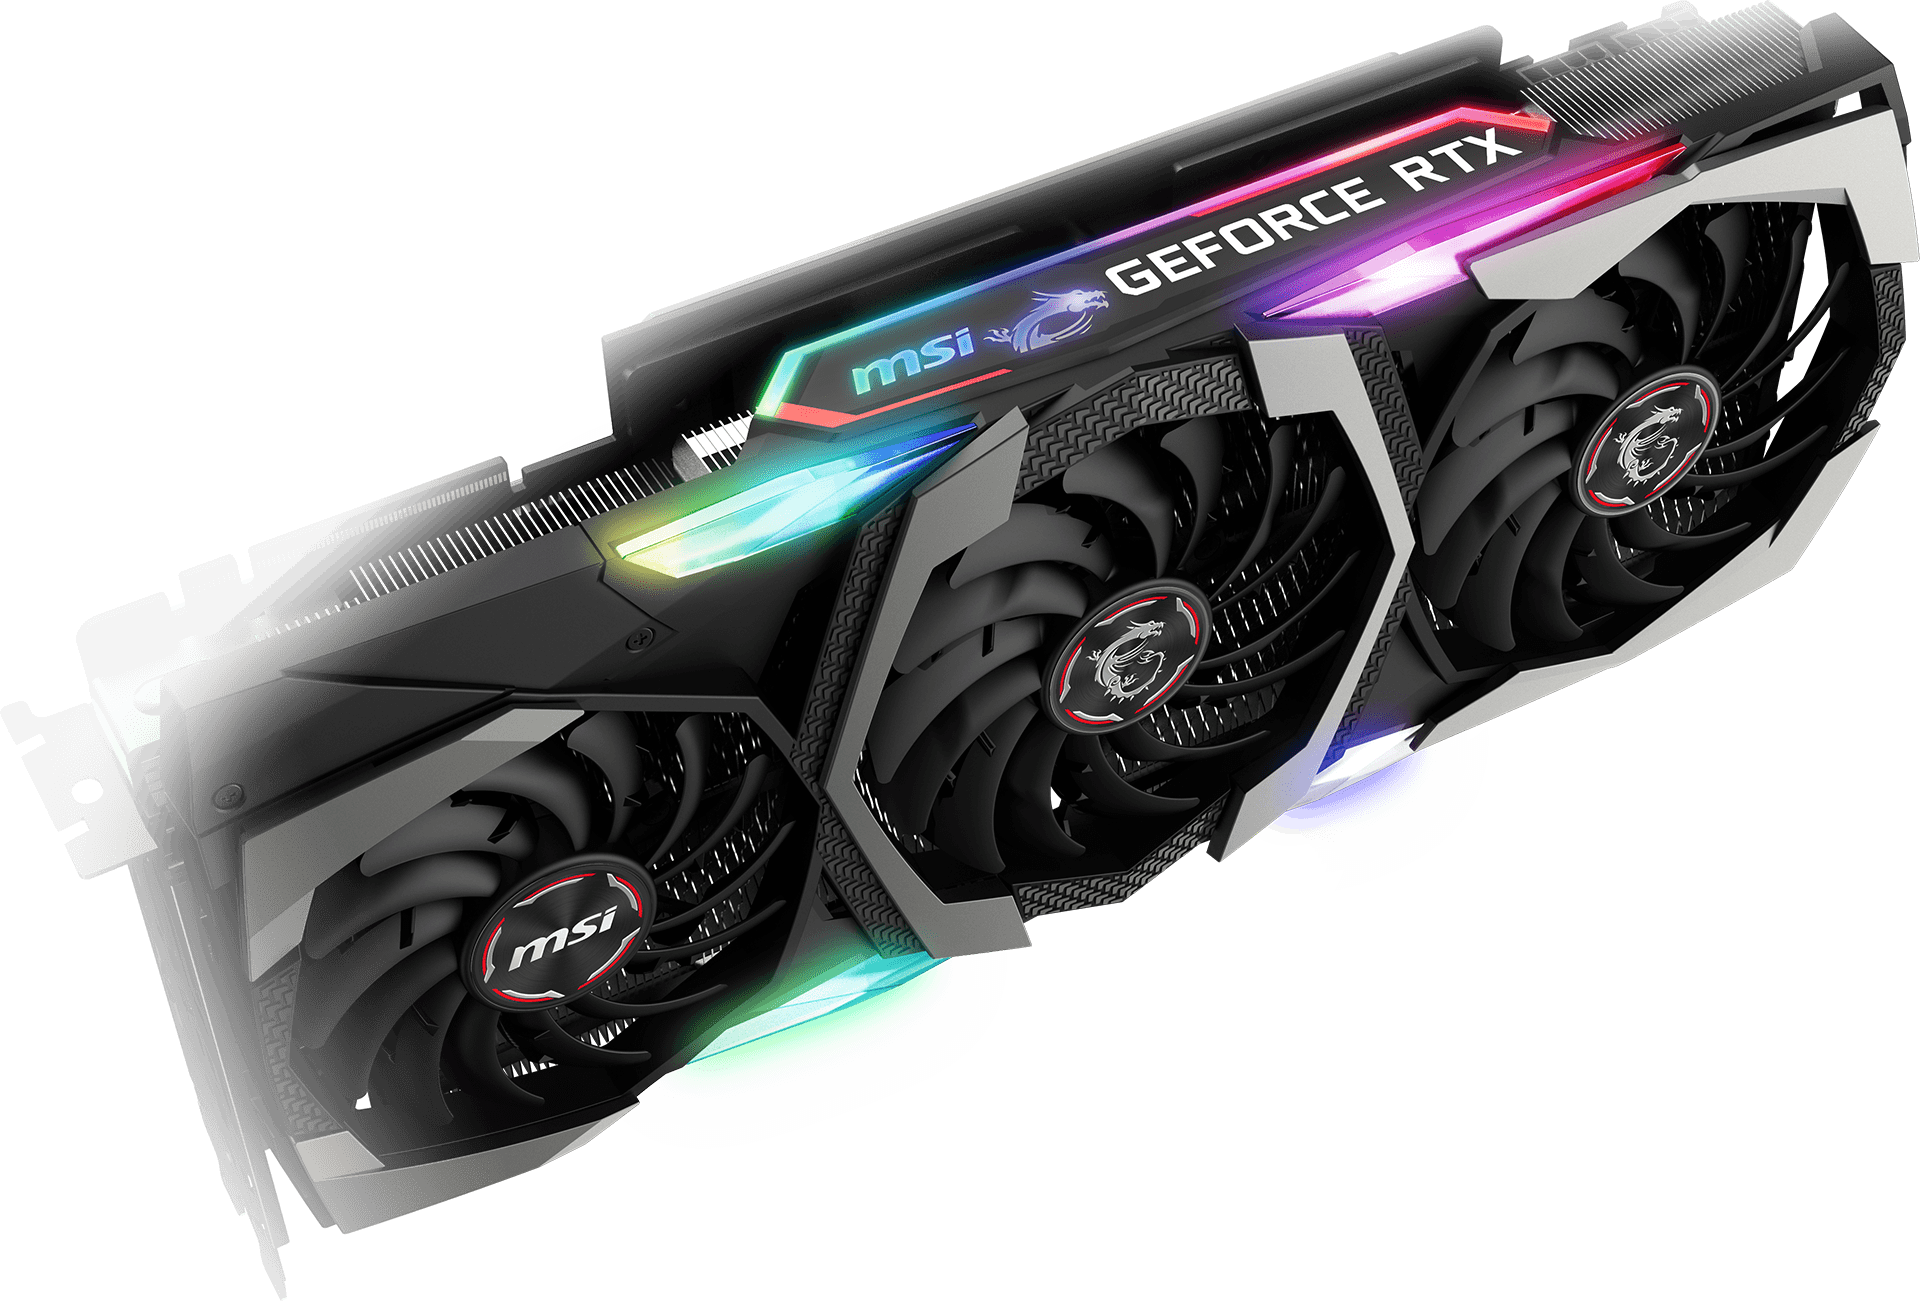 MSI GeForce RTX 2070 Graphics Card Floating Horizontally Angled Down to the Right